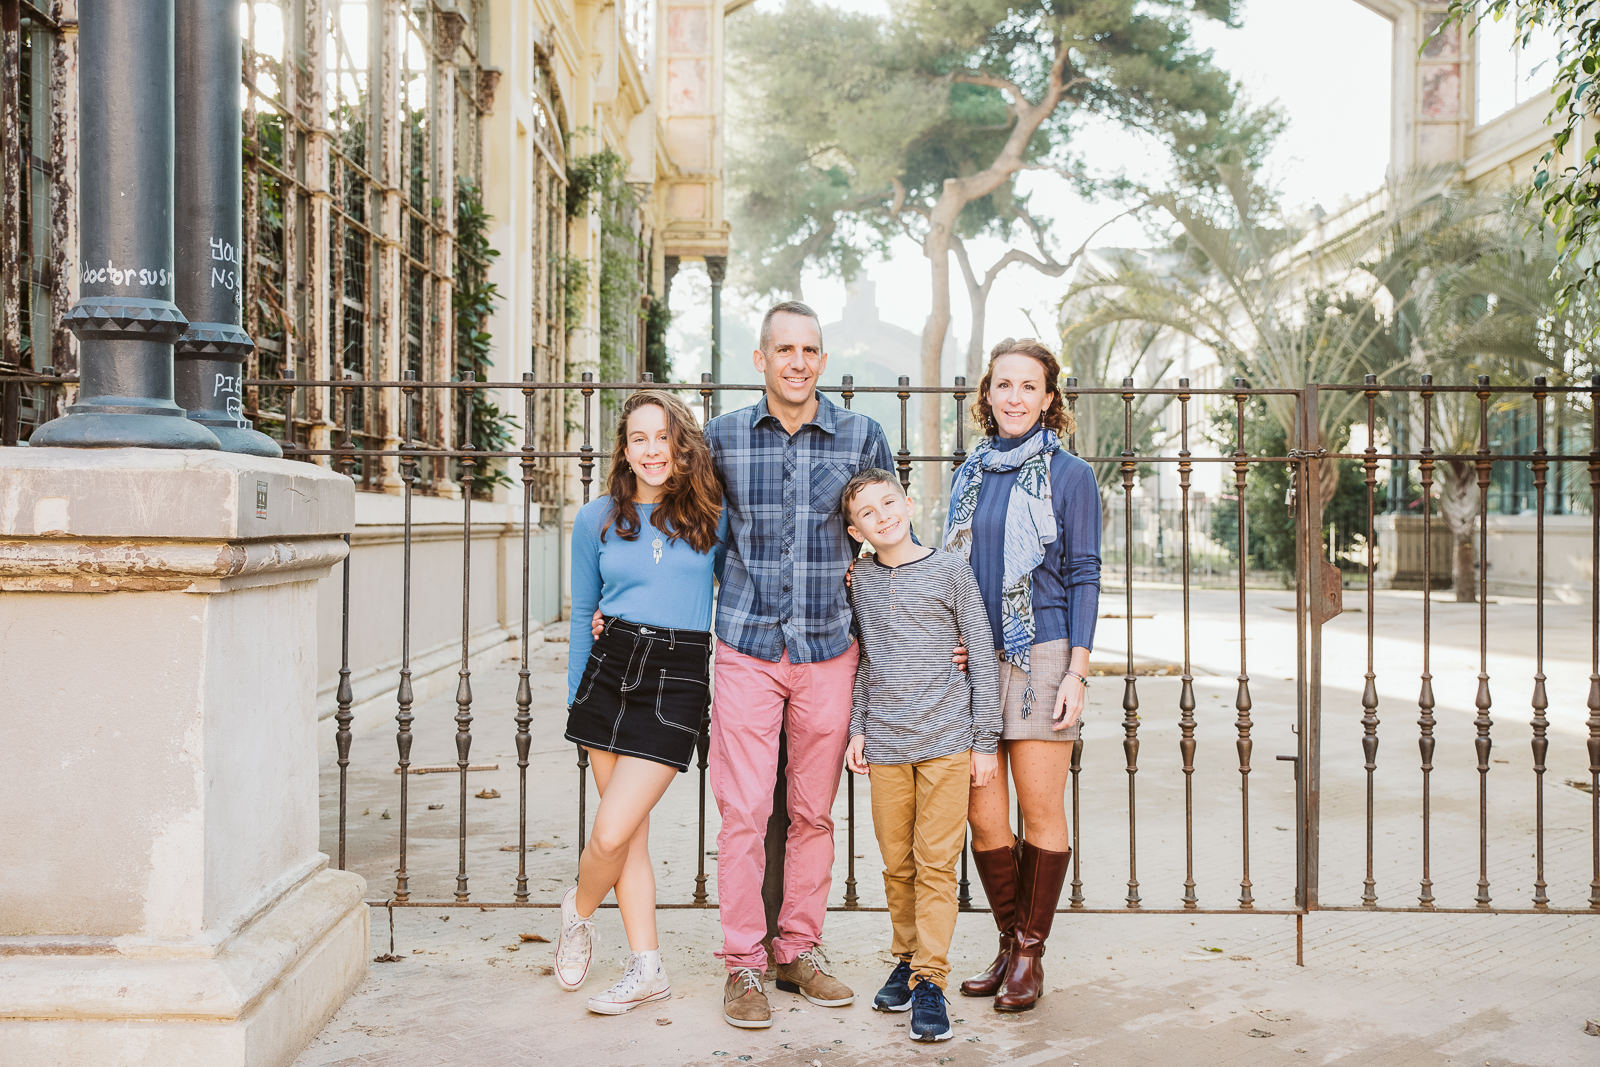 Family photo session in Barcelona | Natalia Wisniewska Photography